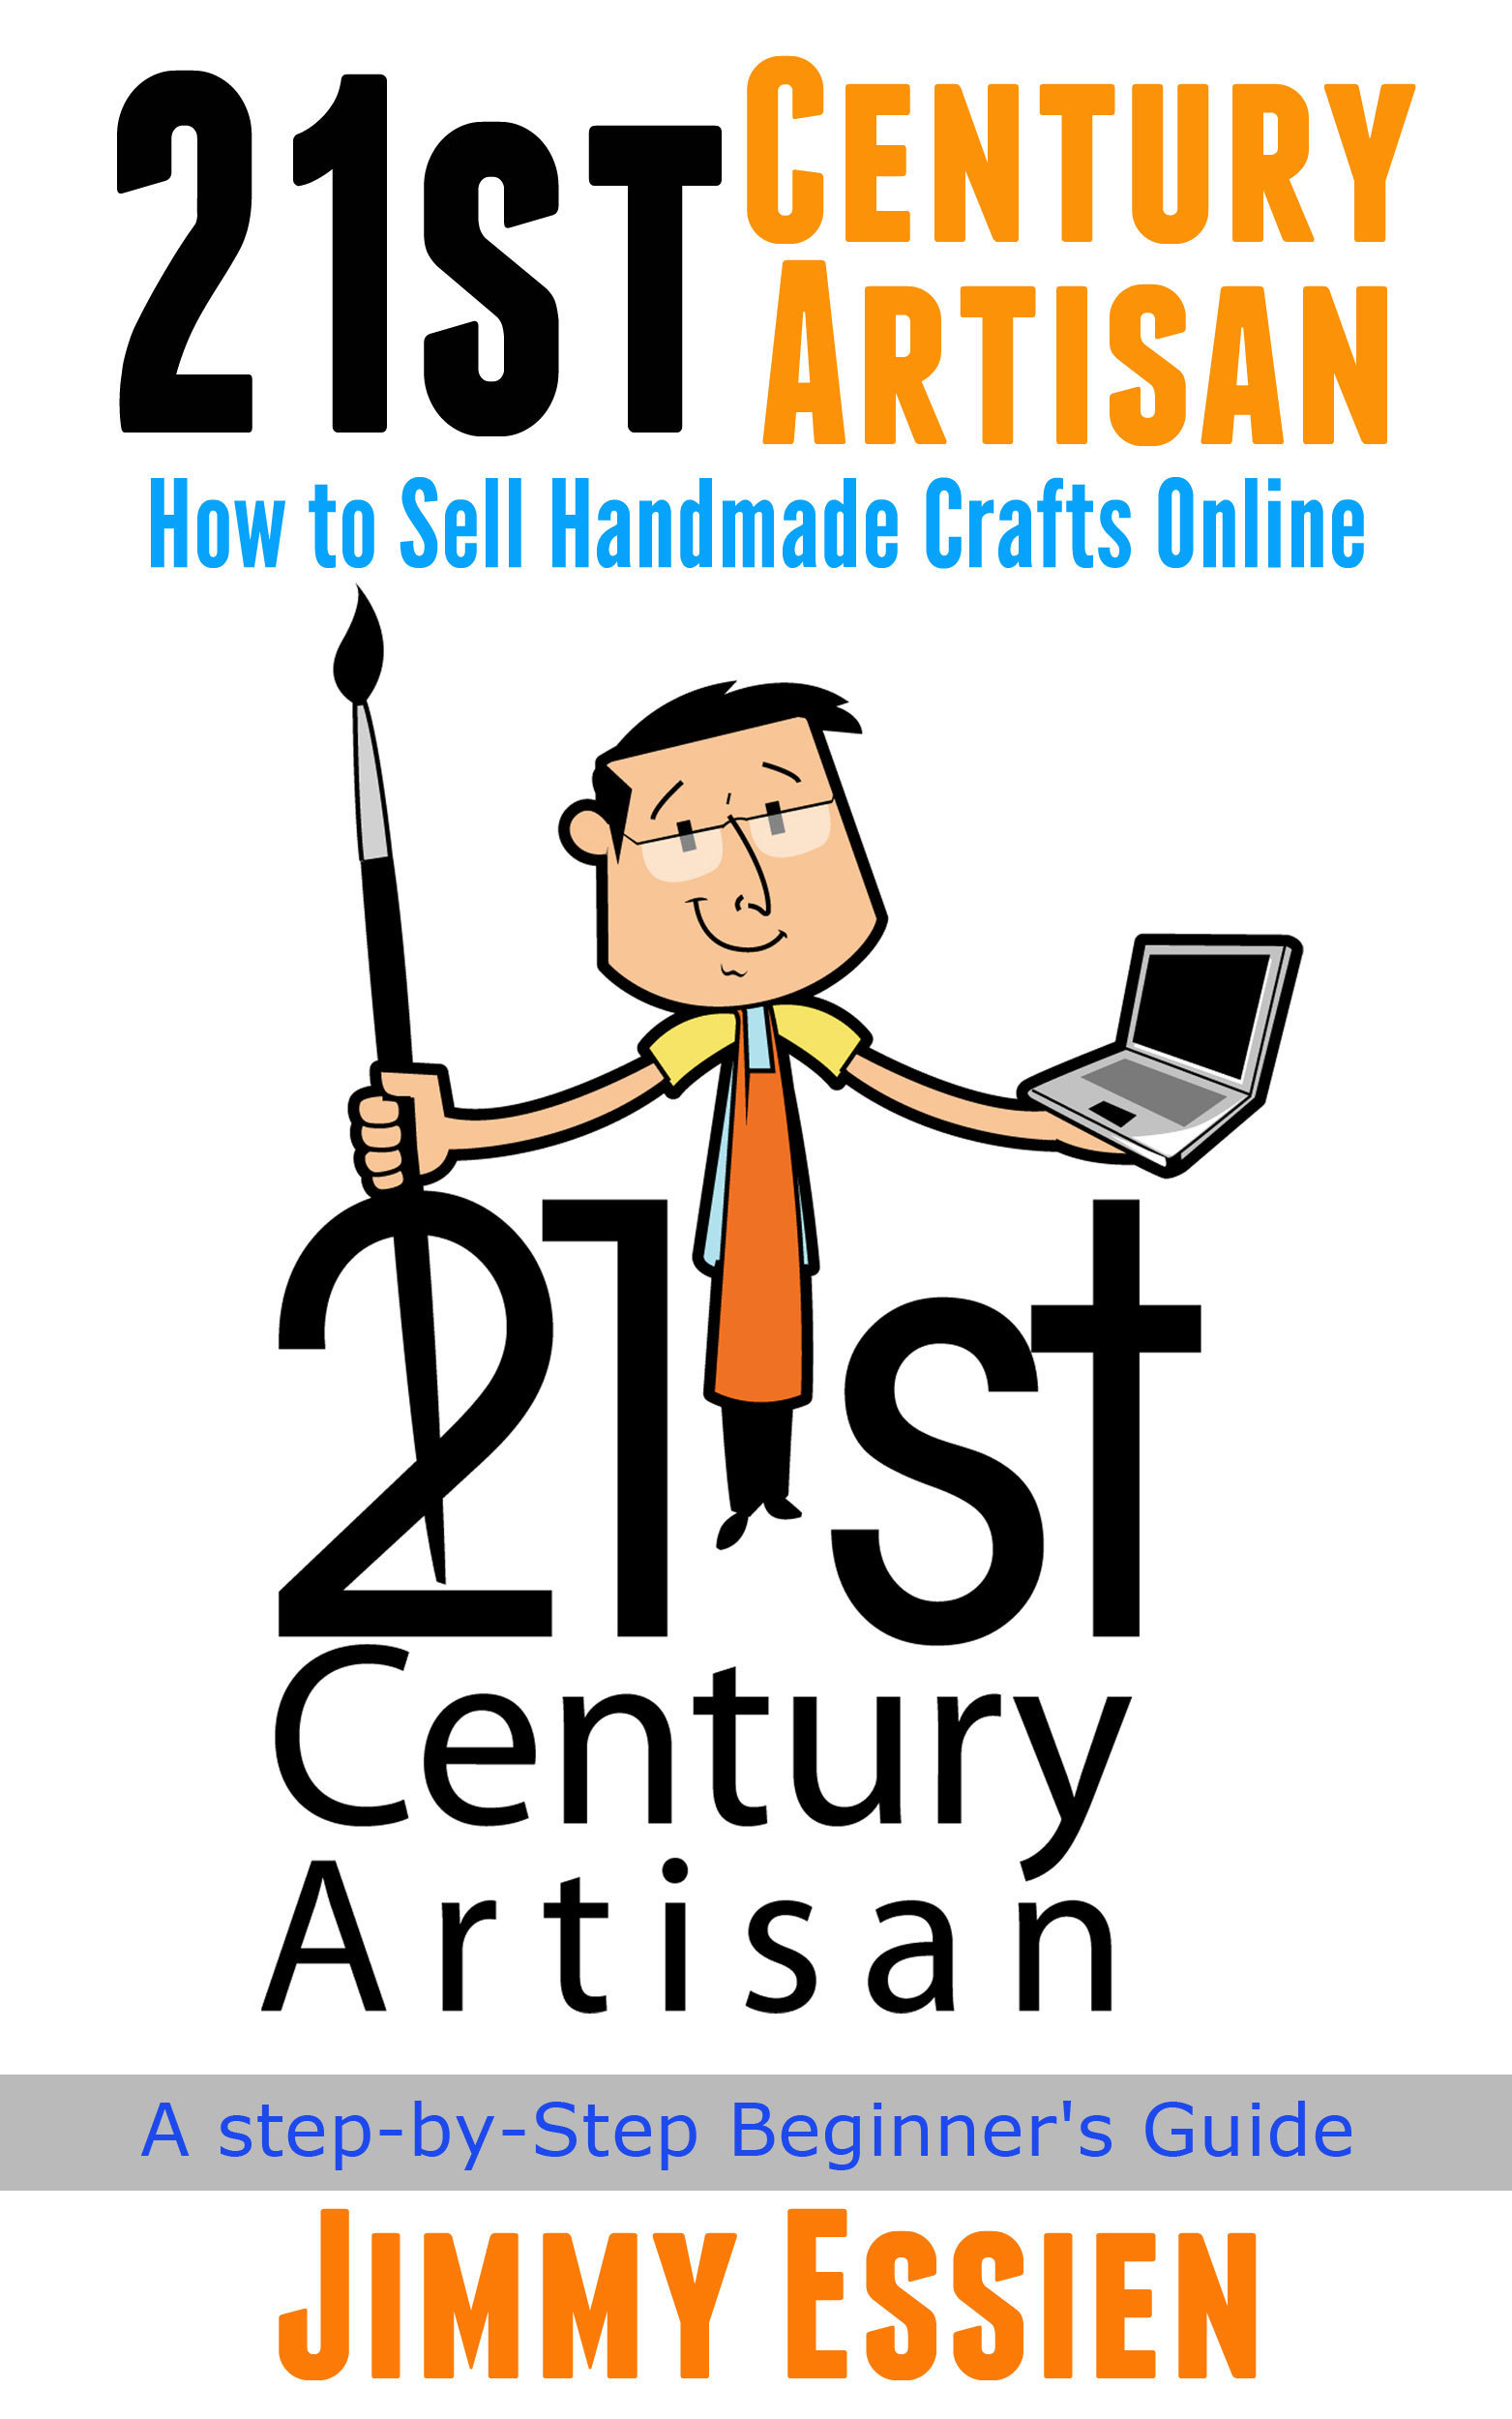 21st Century Artisan: How to Sell Handmade Crafts Online Jimmy Essien